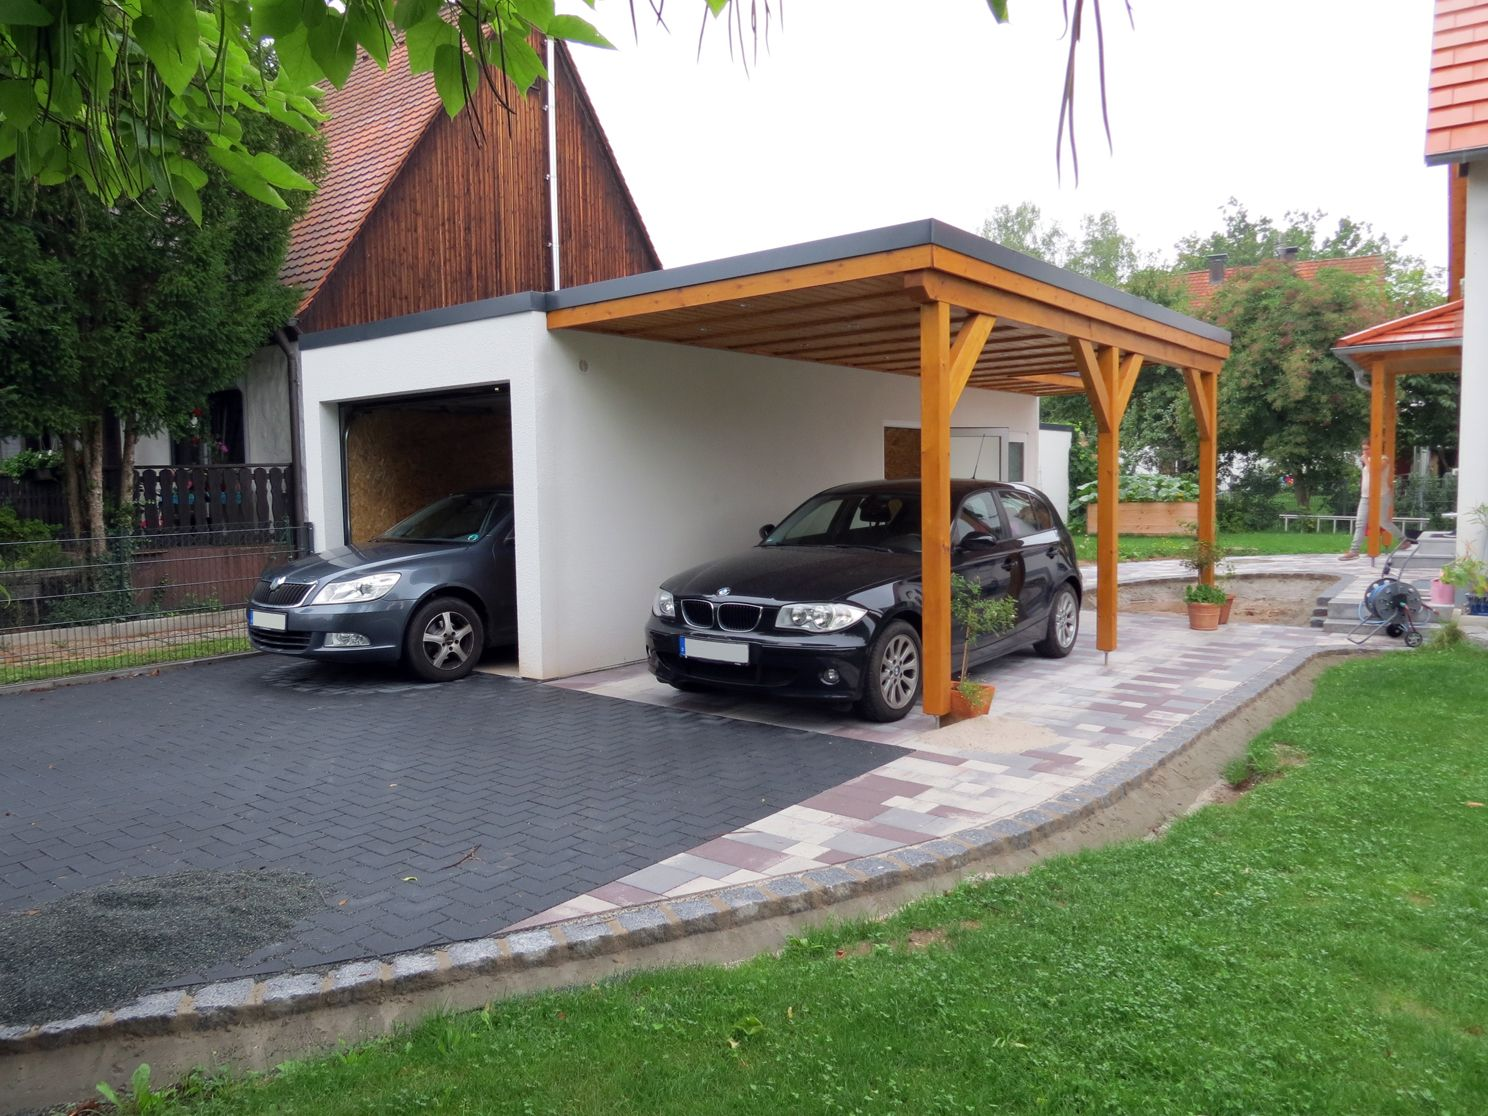 Garage Und Carport Kombination Garage Mit Carport In Holz Optik Garage Carport Kombination In